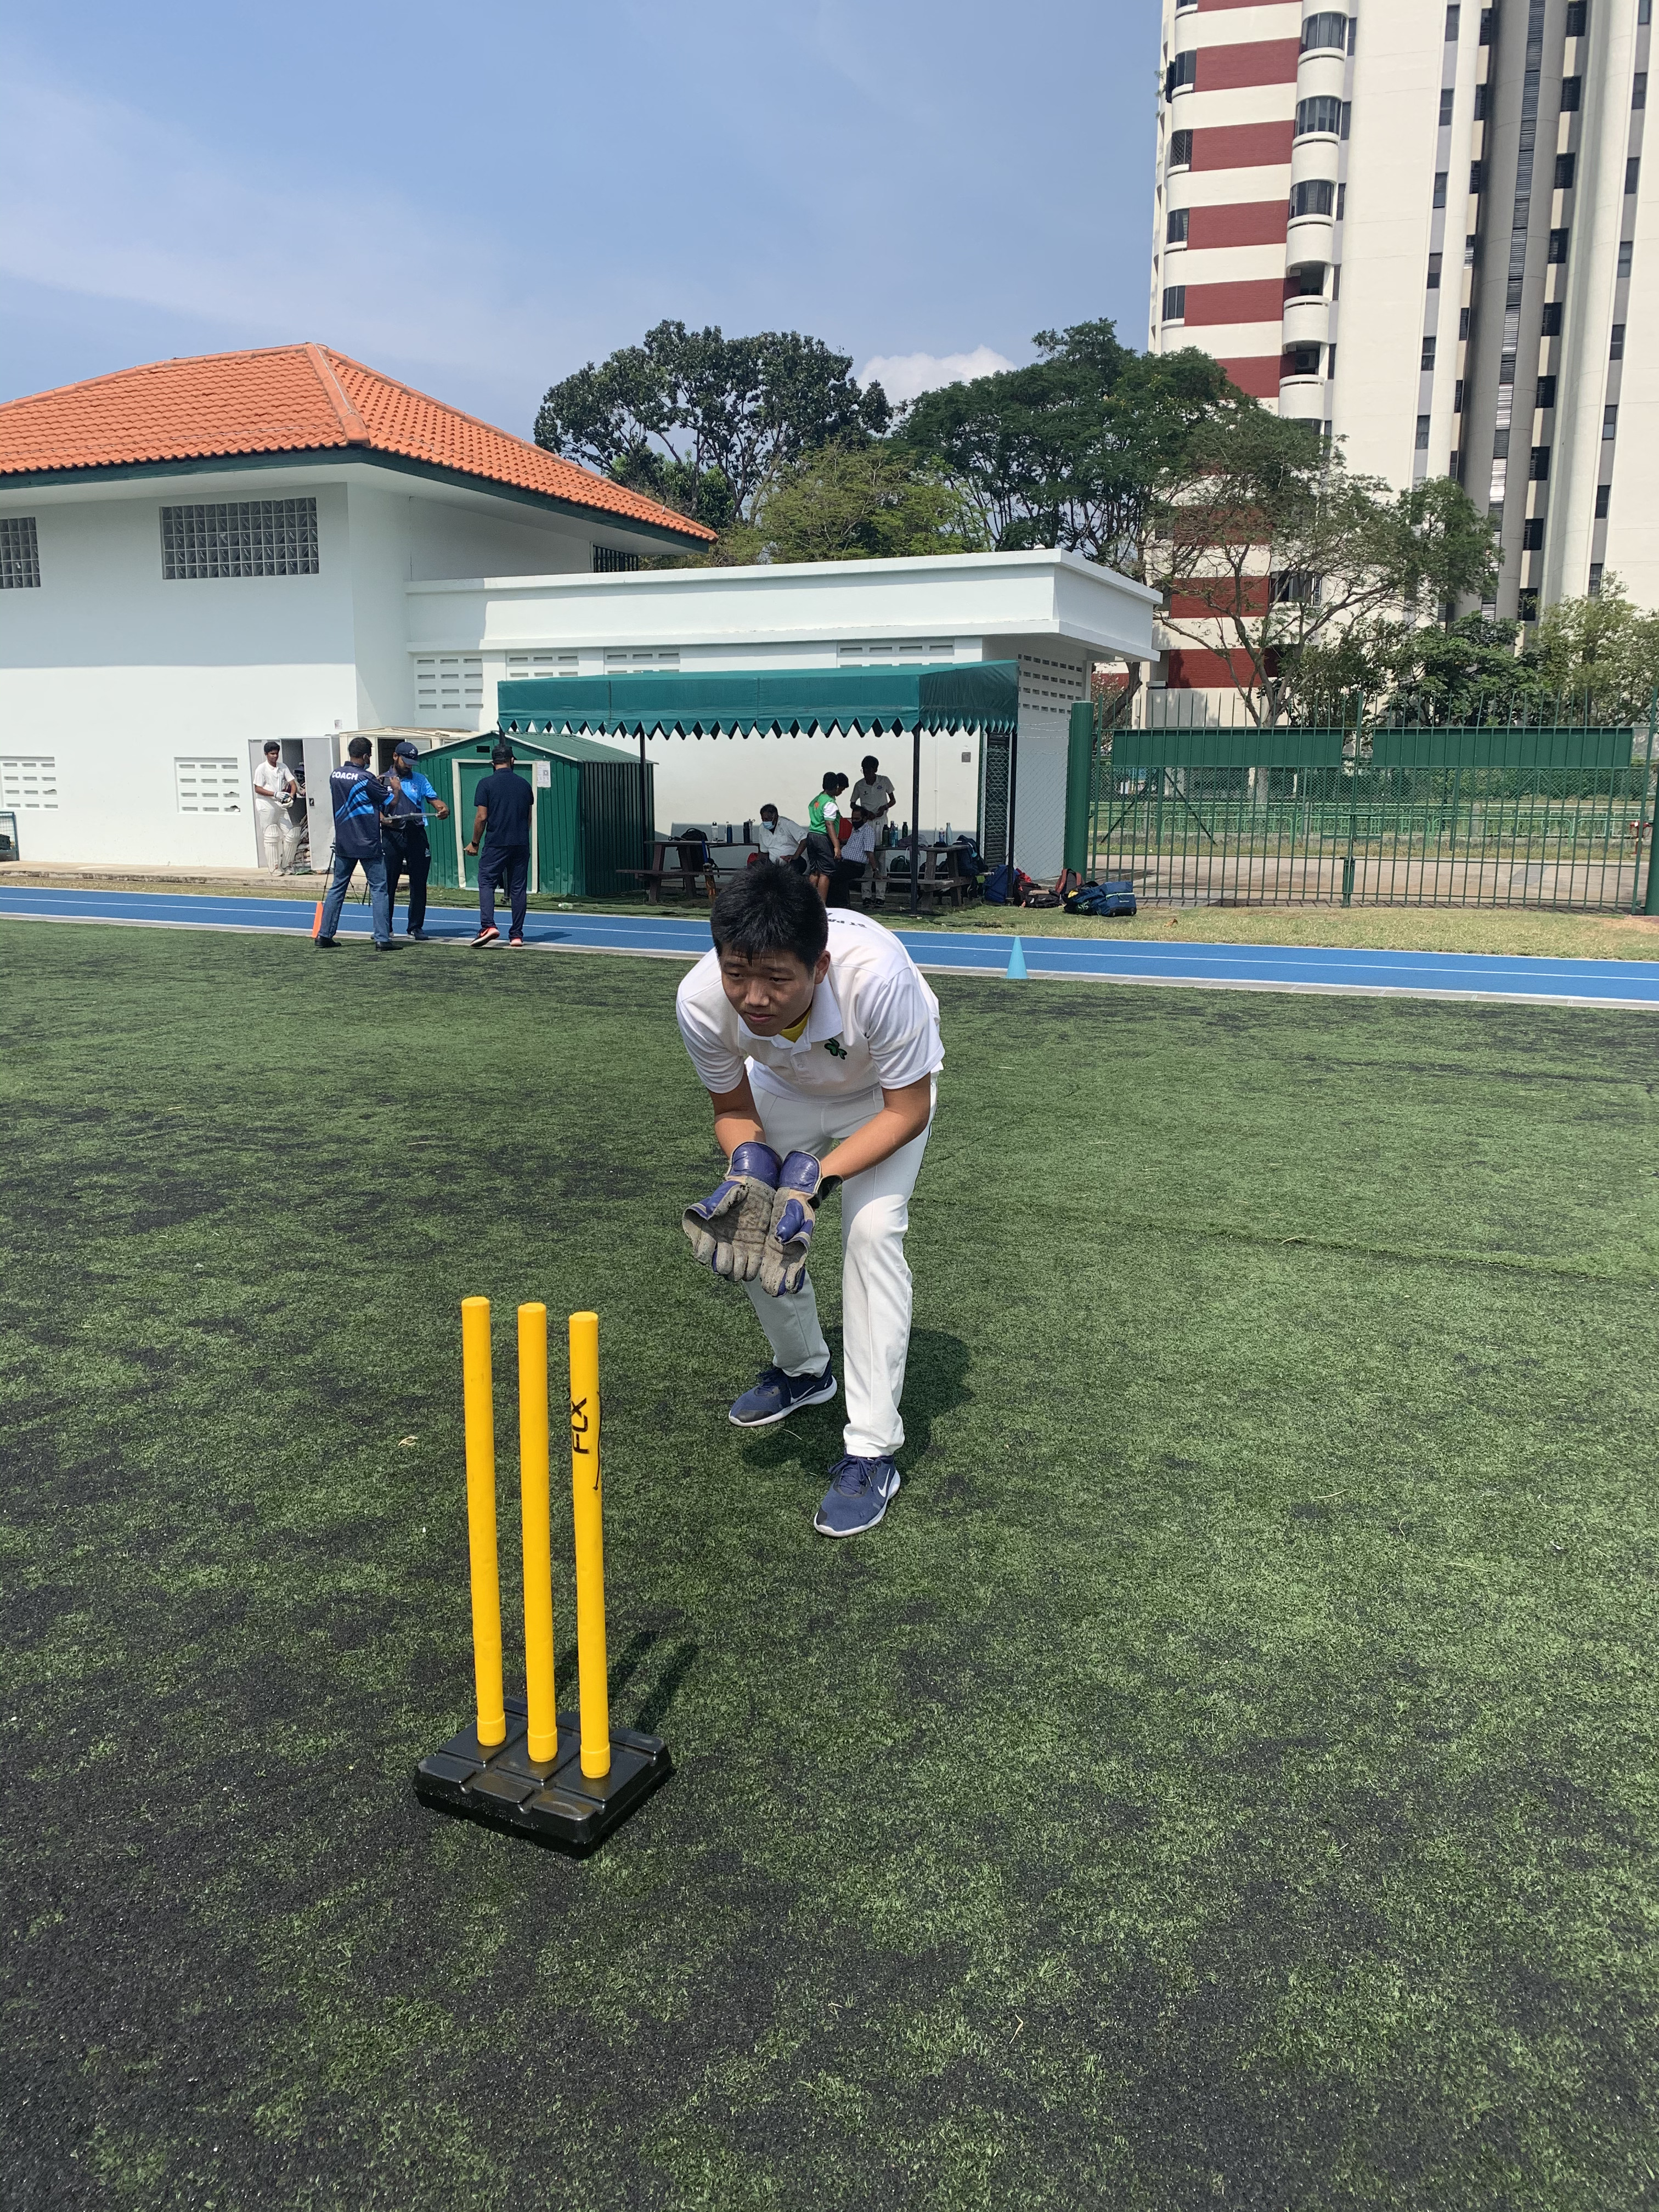 Alonzo Au, a wicket-keeper whose idol is MS Dhoni, was brought to cricket at a young age when he saw his neighbourhood friends in Little India playing the game and joined them.